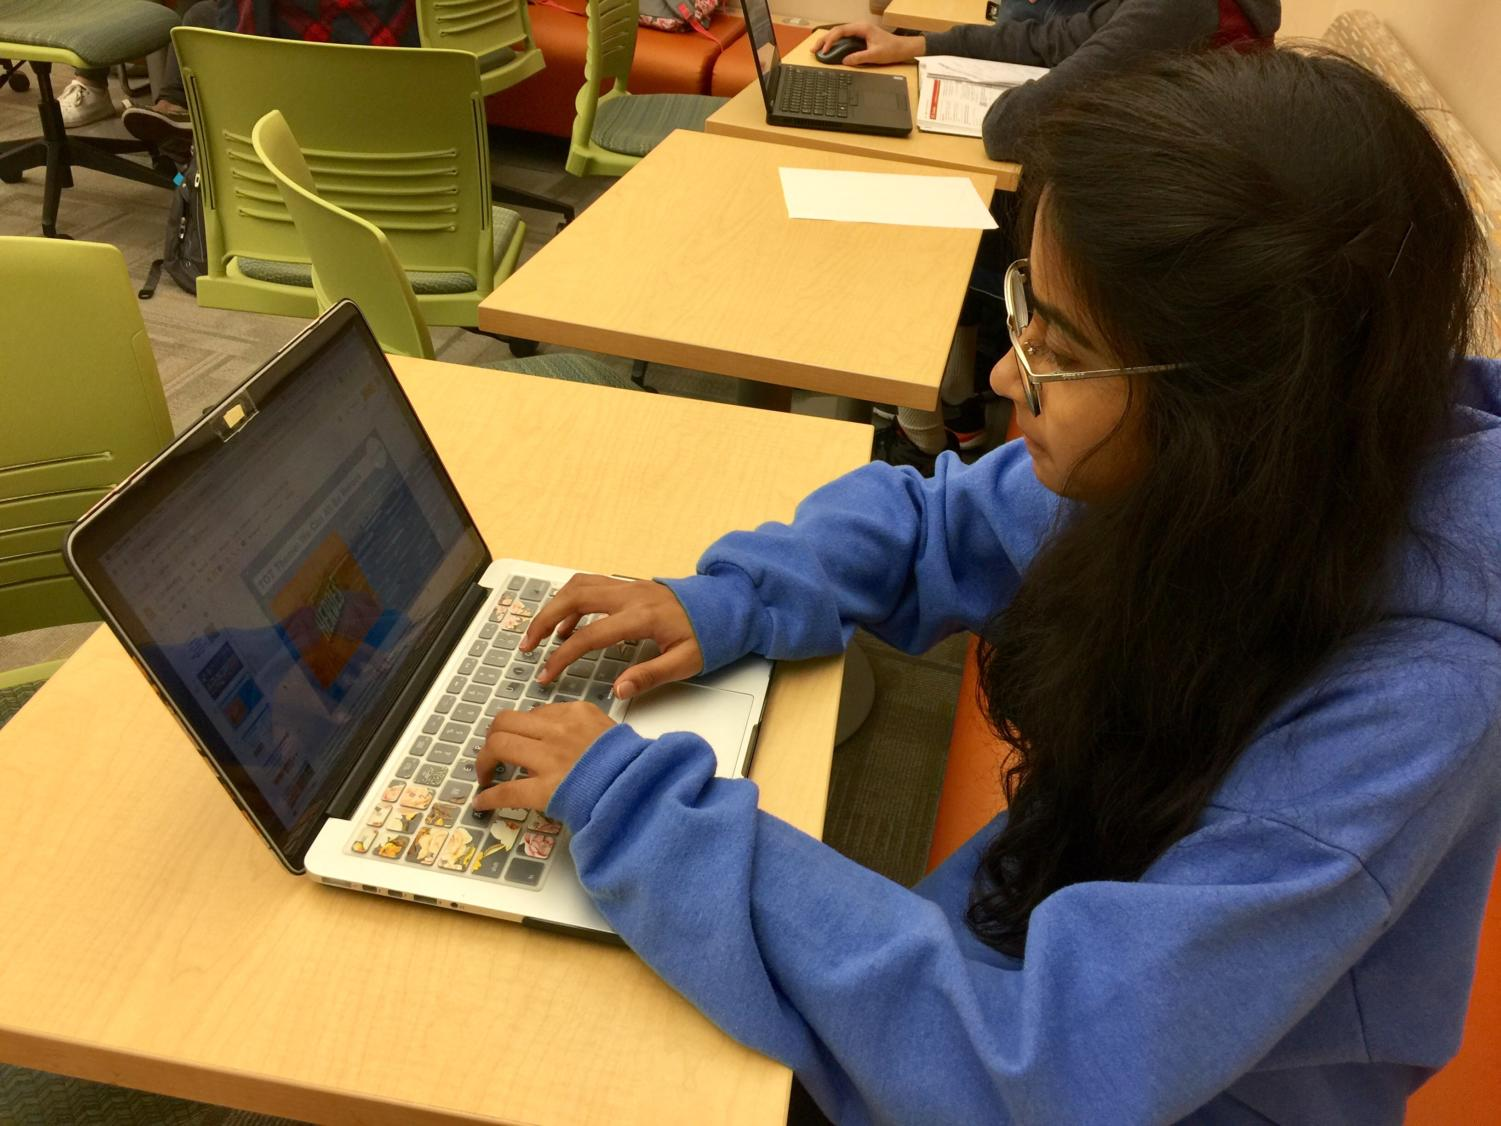 Viha Bynagari, Carmel UNICEF co-president and senior, edits a Carmel UNICEF powerpoint in the media center. She said UNICEF is hosting a Give Back night will take place every Friday in October, and anyone is welcome to volunteer by DM-ing Carmel UNICEF's Instagram.